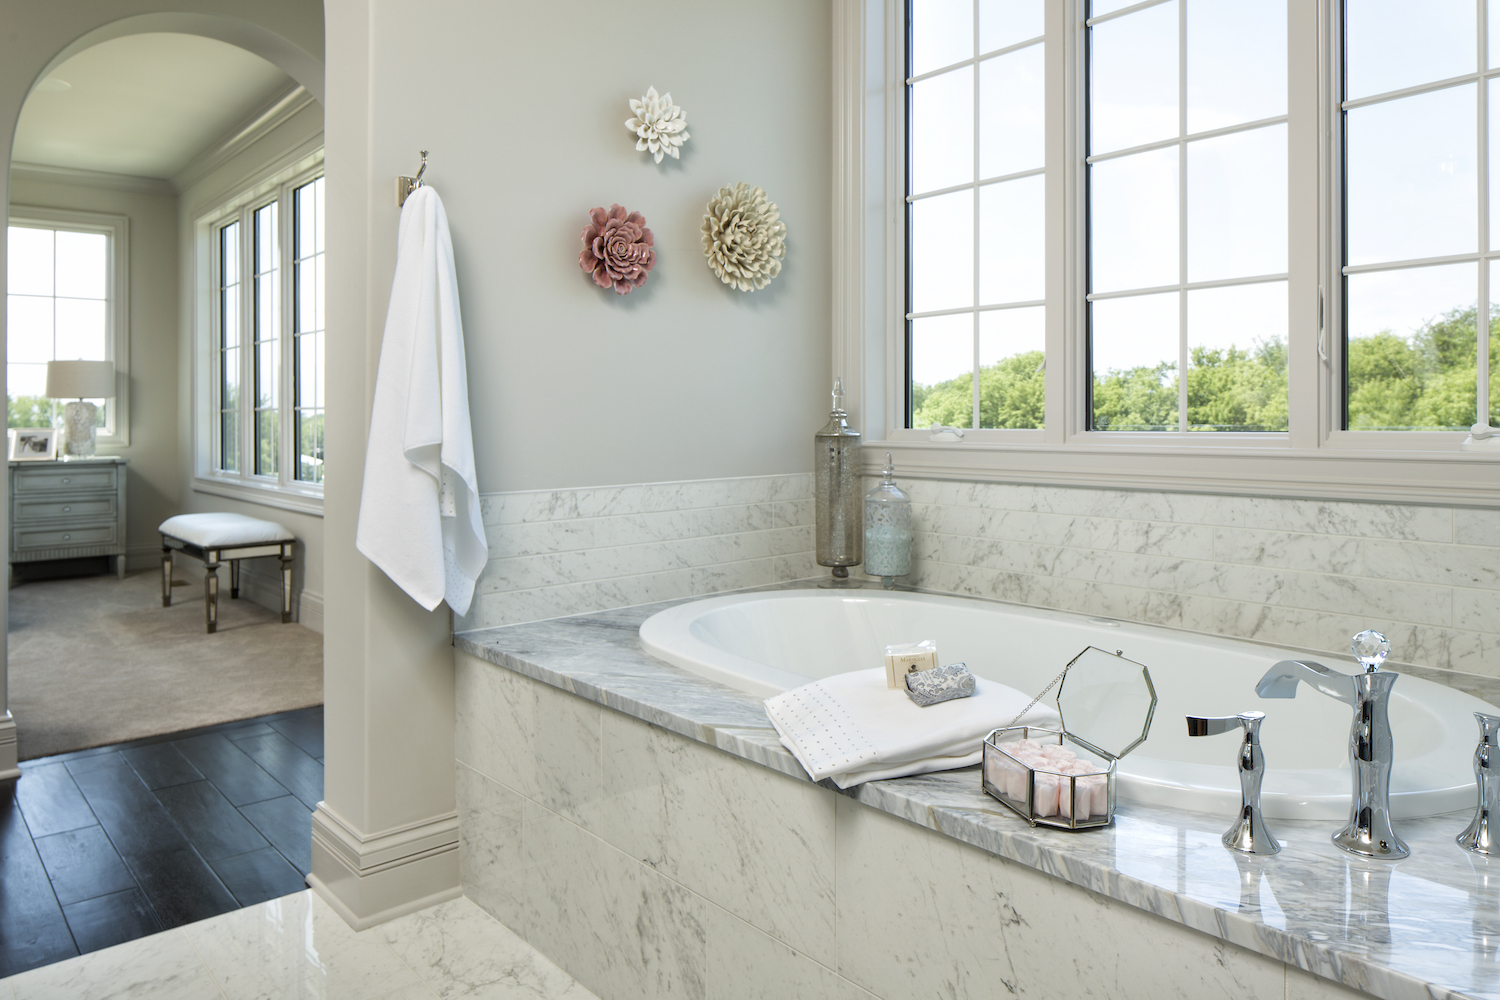 Natural Stone Showroom | Sinks, Fireplaces, Kitchens, Bathrooms ...